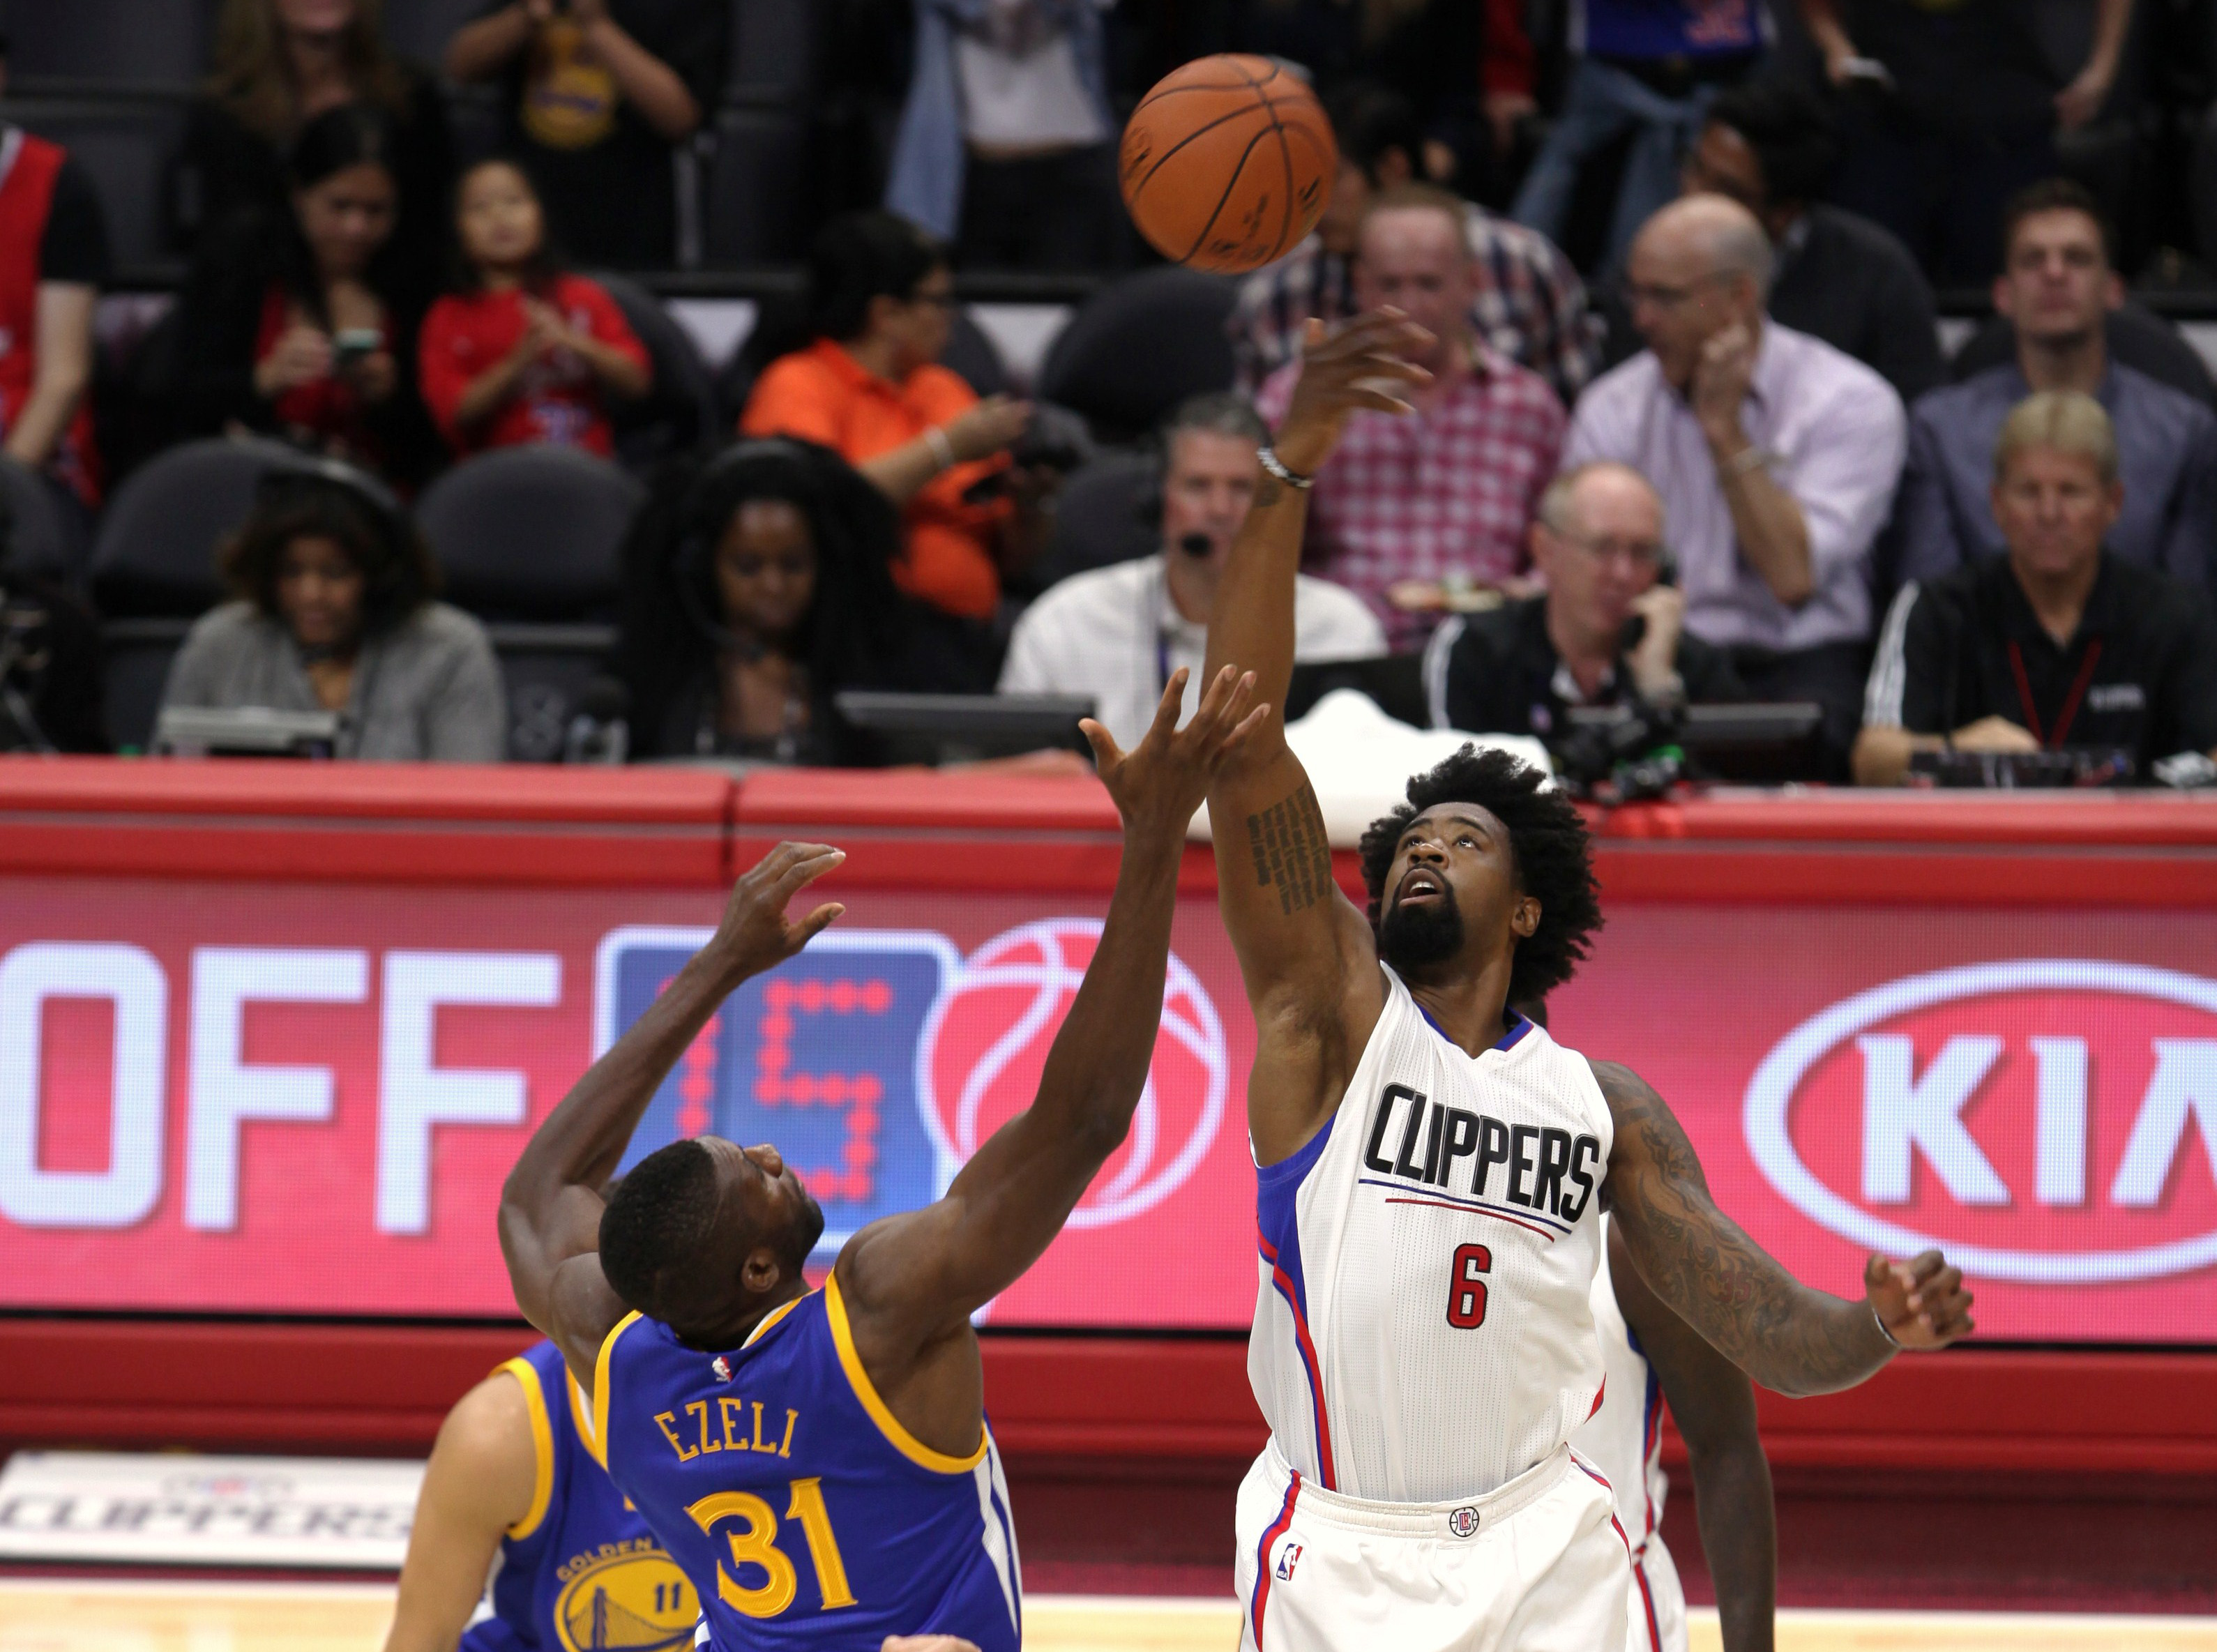 Oct. 20, 2015 - Los Angeles, CA, USA - The Los Angeles Clippers DeAndre Jordan (6) goes up for opening tip against the Golden state Warrior Festus Ezeli (31) during a preseason playing at Staples Center in Los Angeles on Tuesday, Oct. 20, 2015 (Photo by William Jaye Johnson)